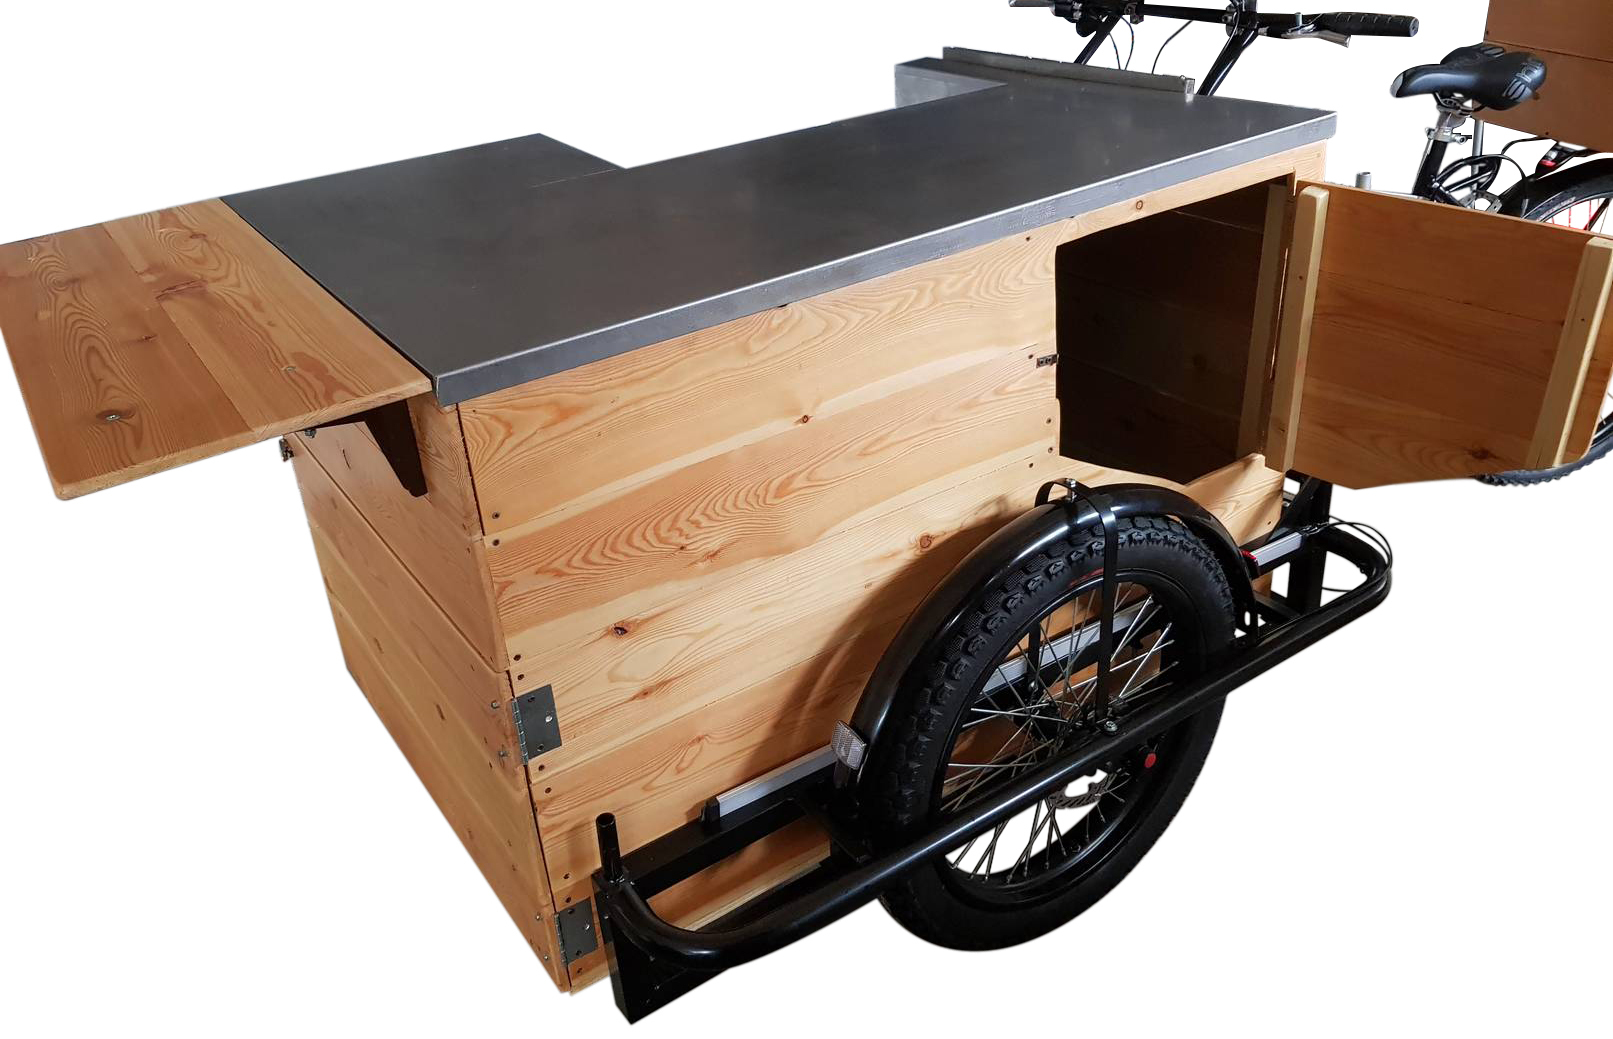 BANCO_HAWAI_TRICYCLE_WOODEN_WORKBENCH_IN_LEGNO_TRICICLO_STREETFOOD_7